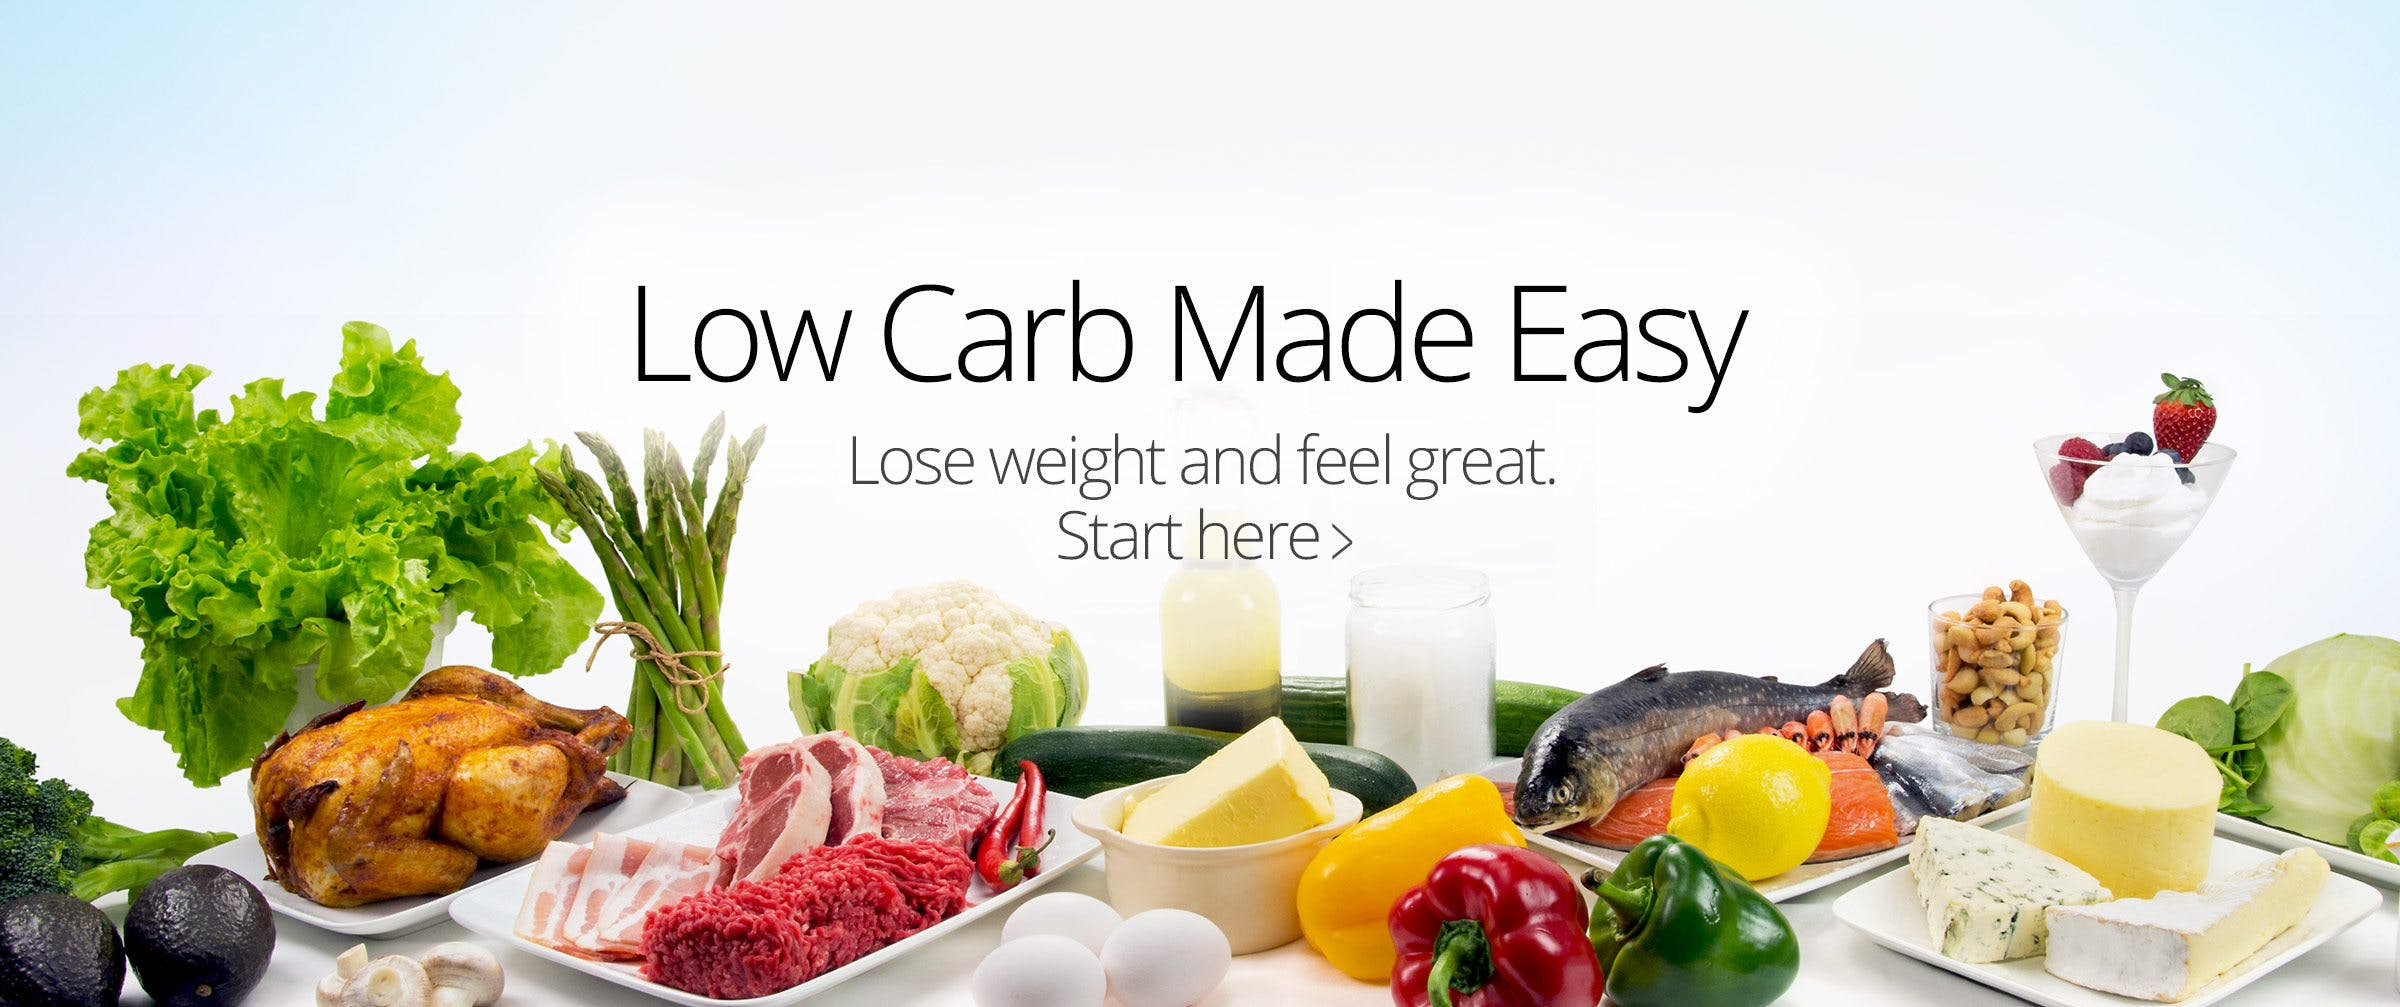 New Vastly Updated Low-Carb Guide